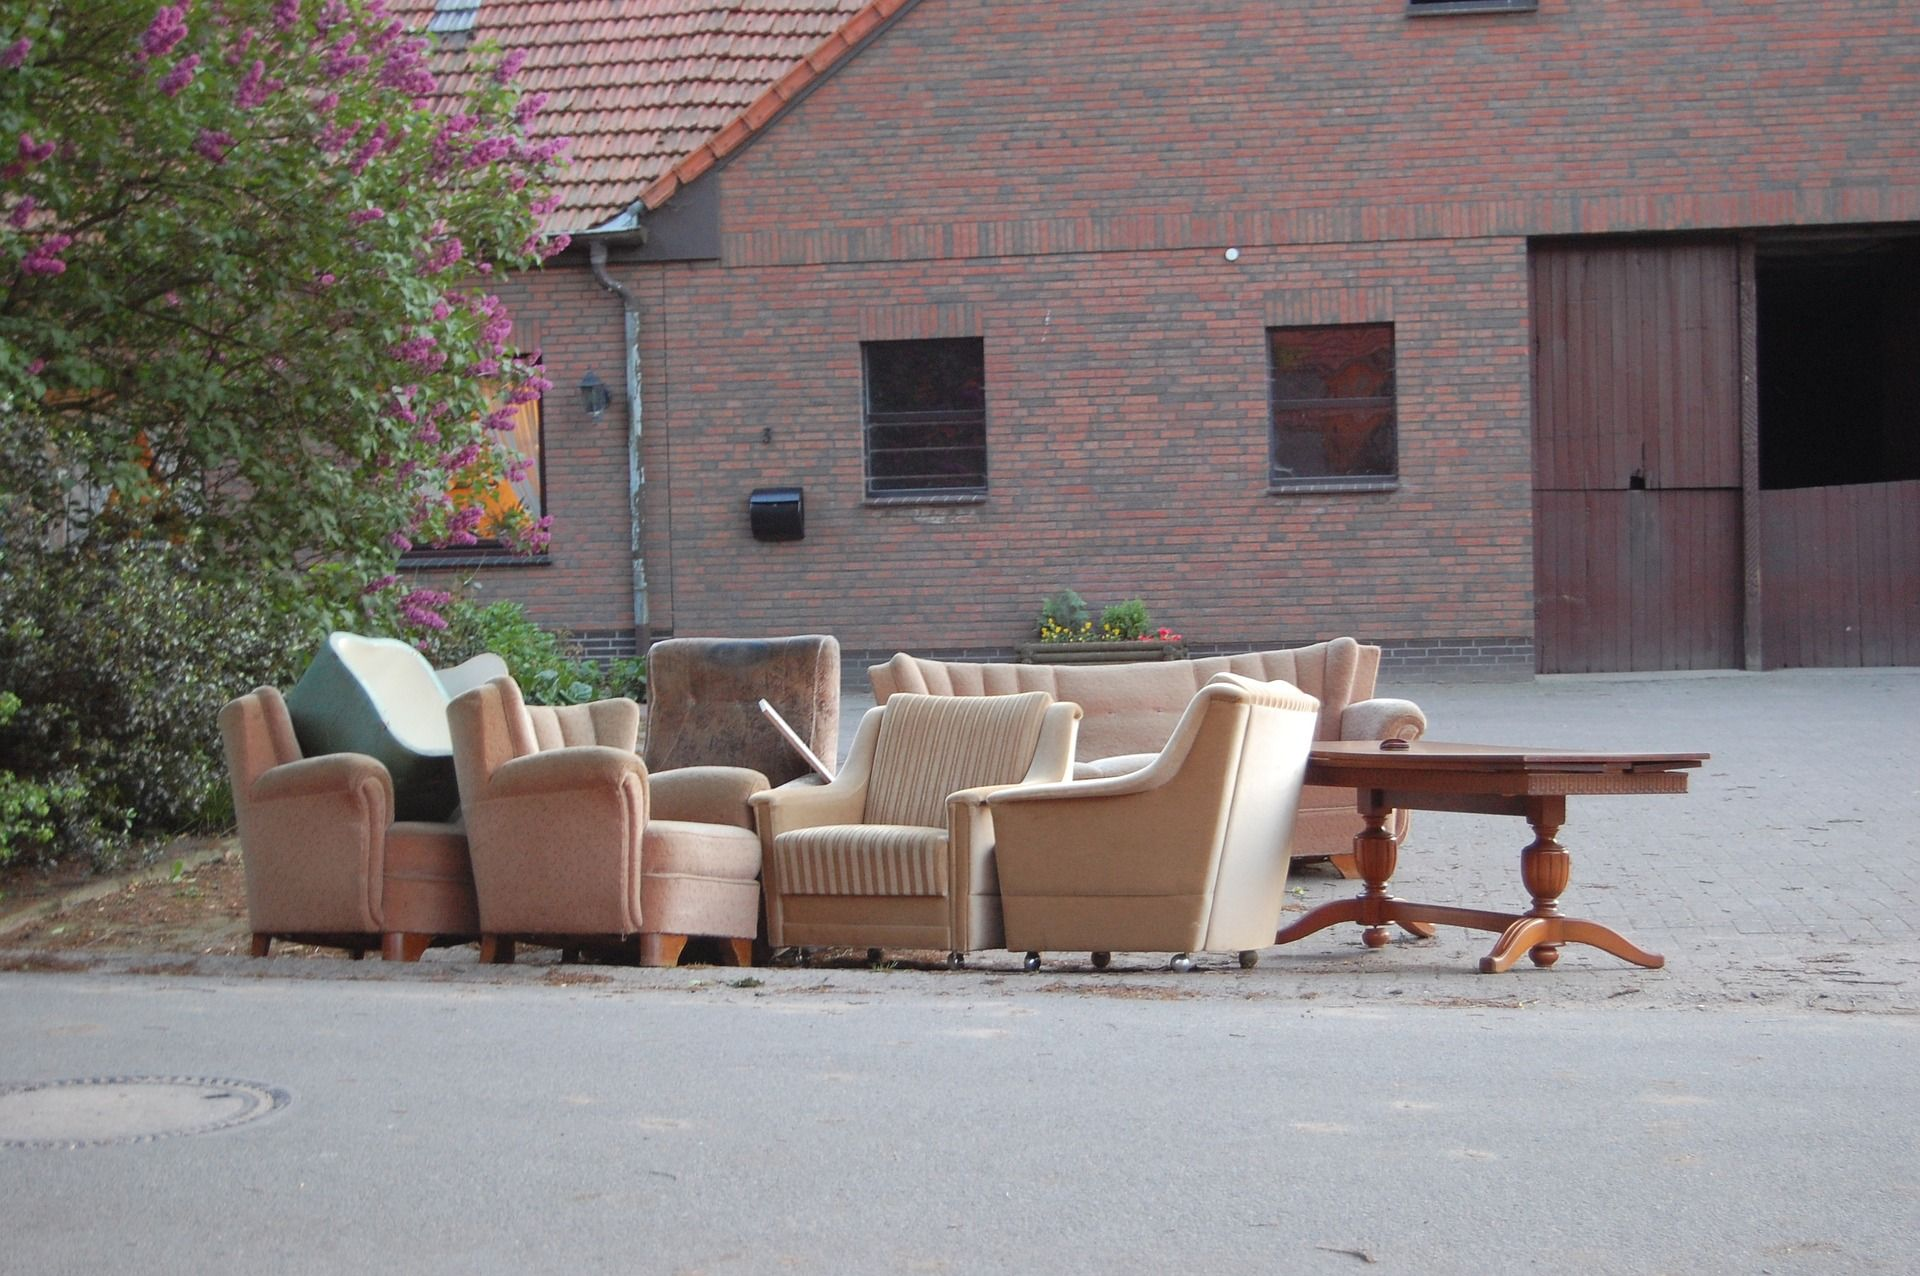 bulky-waste-items-on-the-street